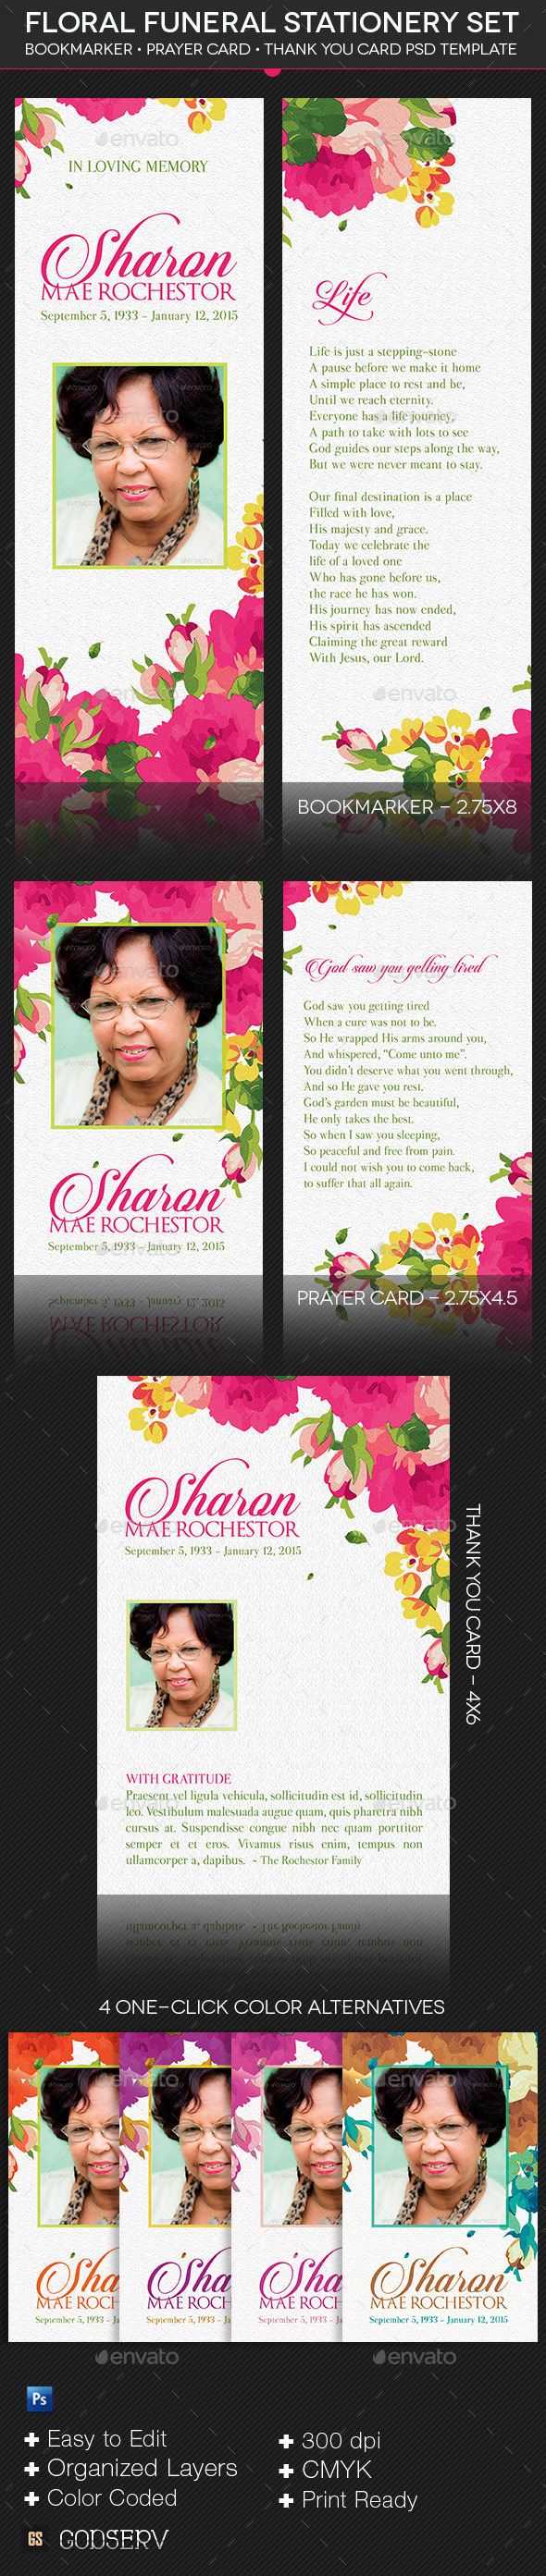 floral funeral stationery template set stationery print templates